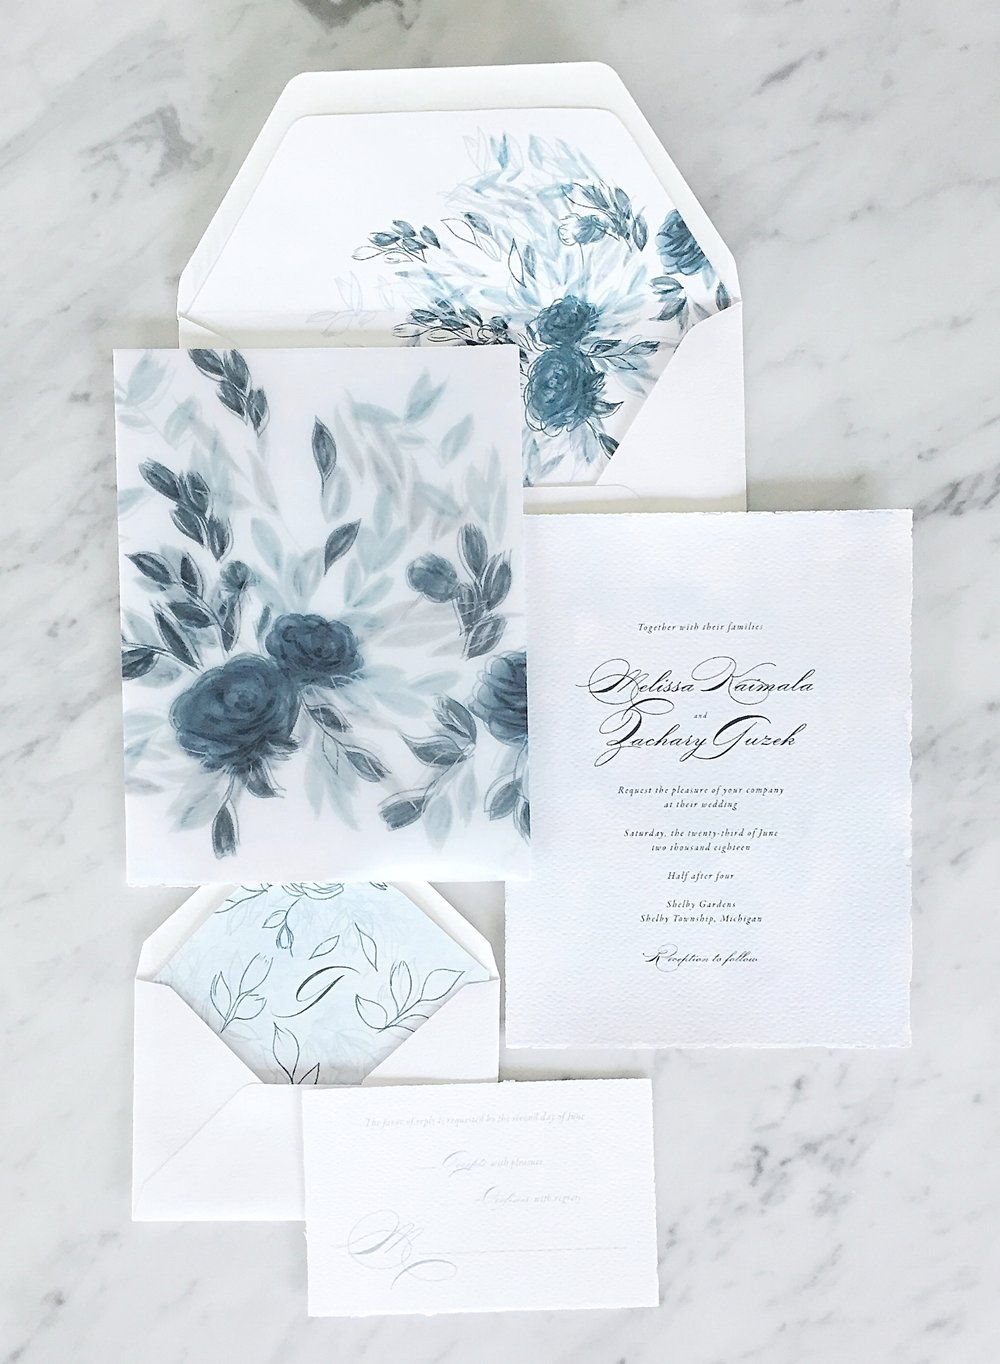 Bespoke Invitations for the hopelessly romantic at heart - wedding invitations that will make your guests gasp with excitement when they open their mailboxes